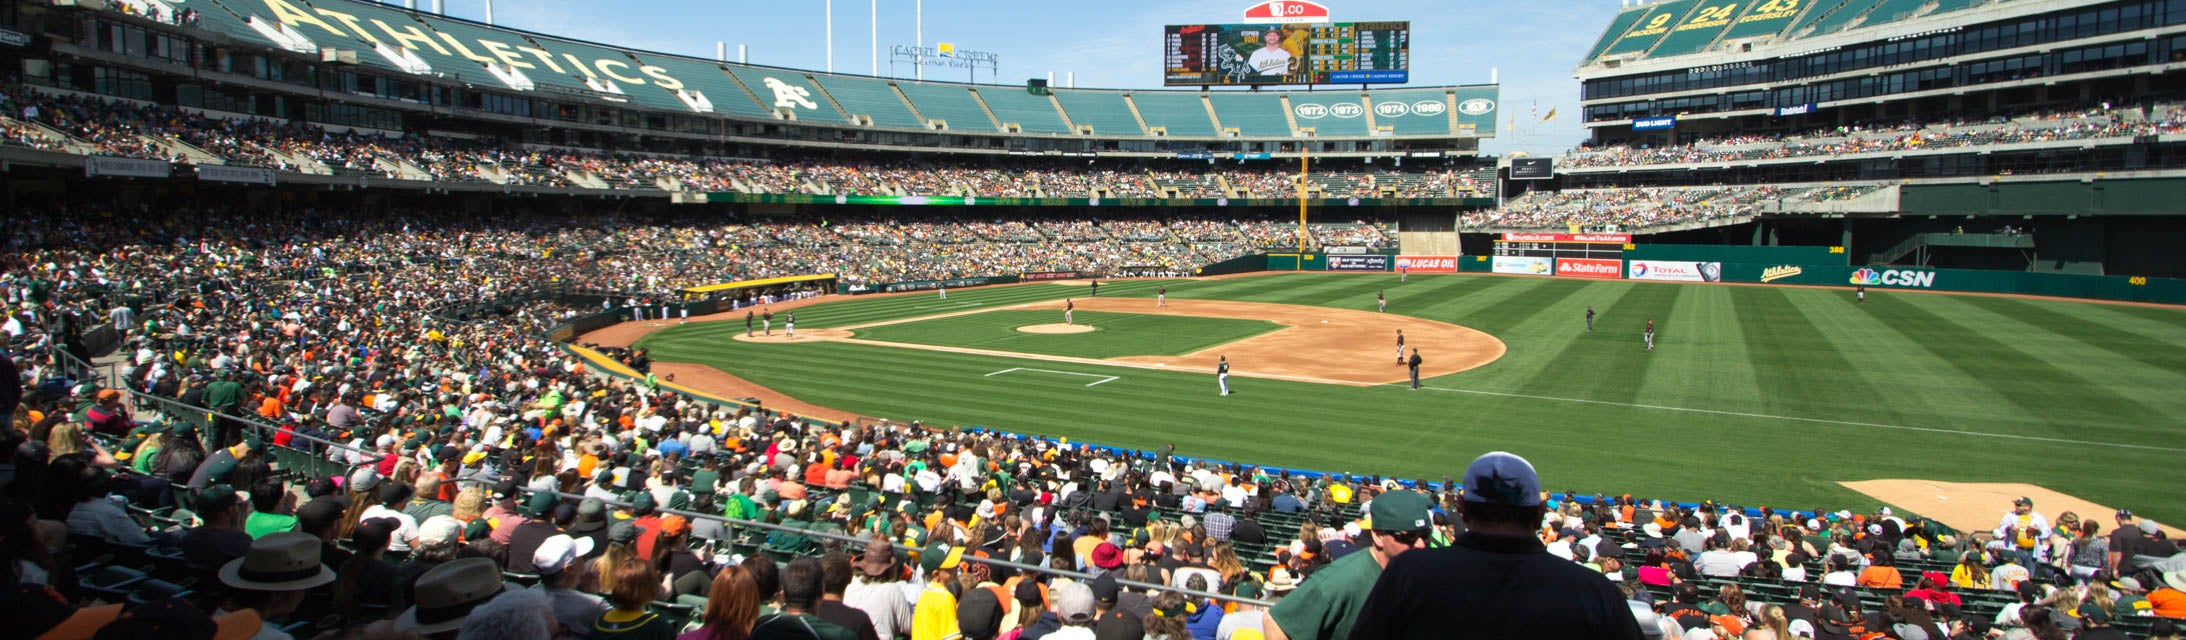 Seat view from Field Infield